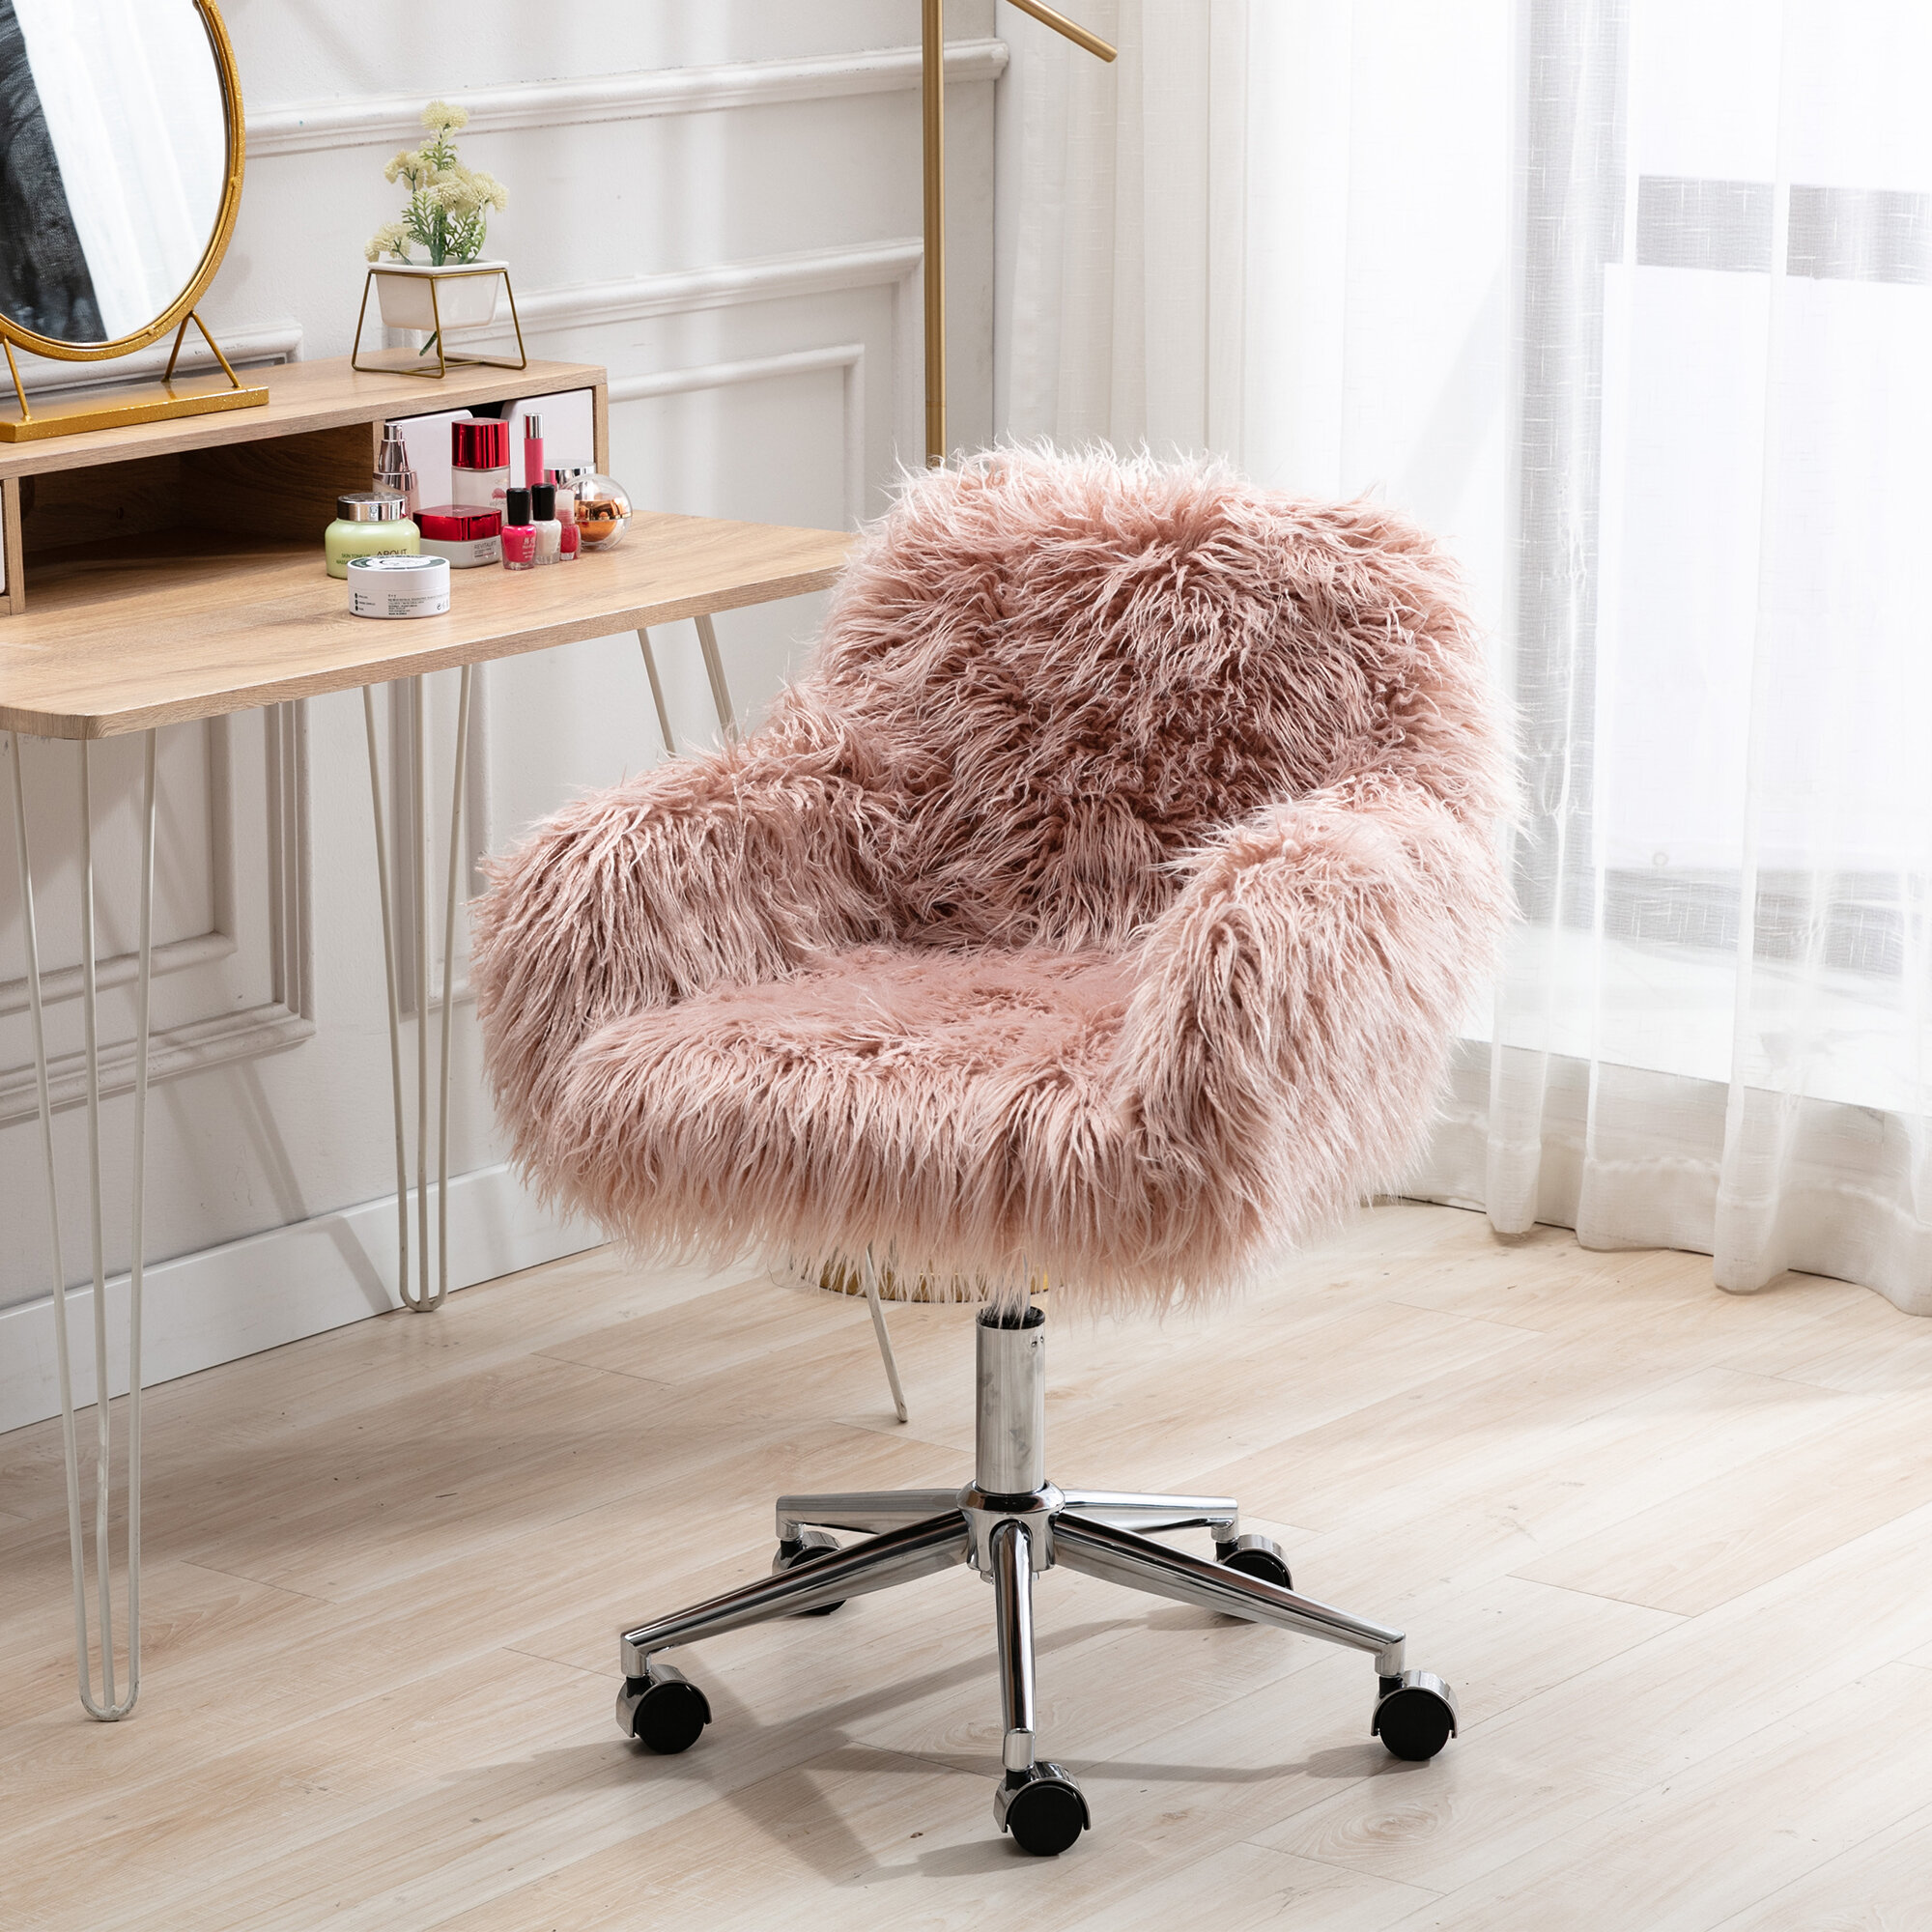 Everly Quinn Home Faux Fur Vanity Stool Chair Accent Chair Soft Furry Compact Padded Seat Vanity Living Room Bedroom And Kids Room Height Adjustable Office Chairs Wayfair Ca